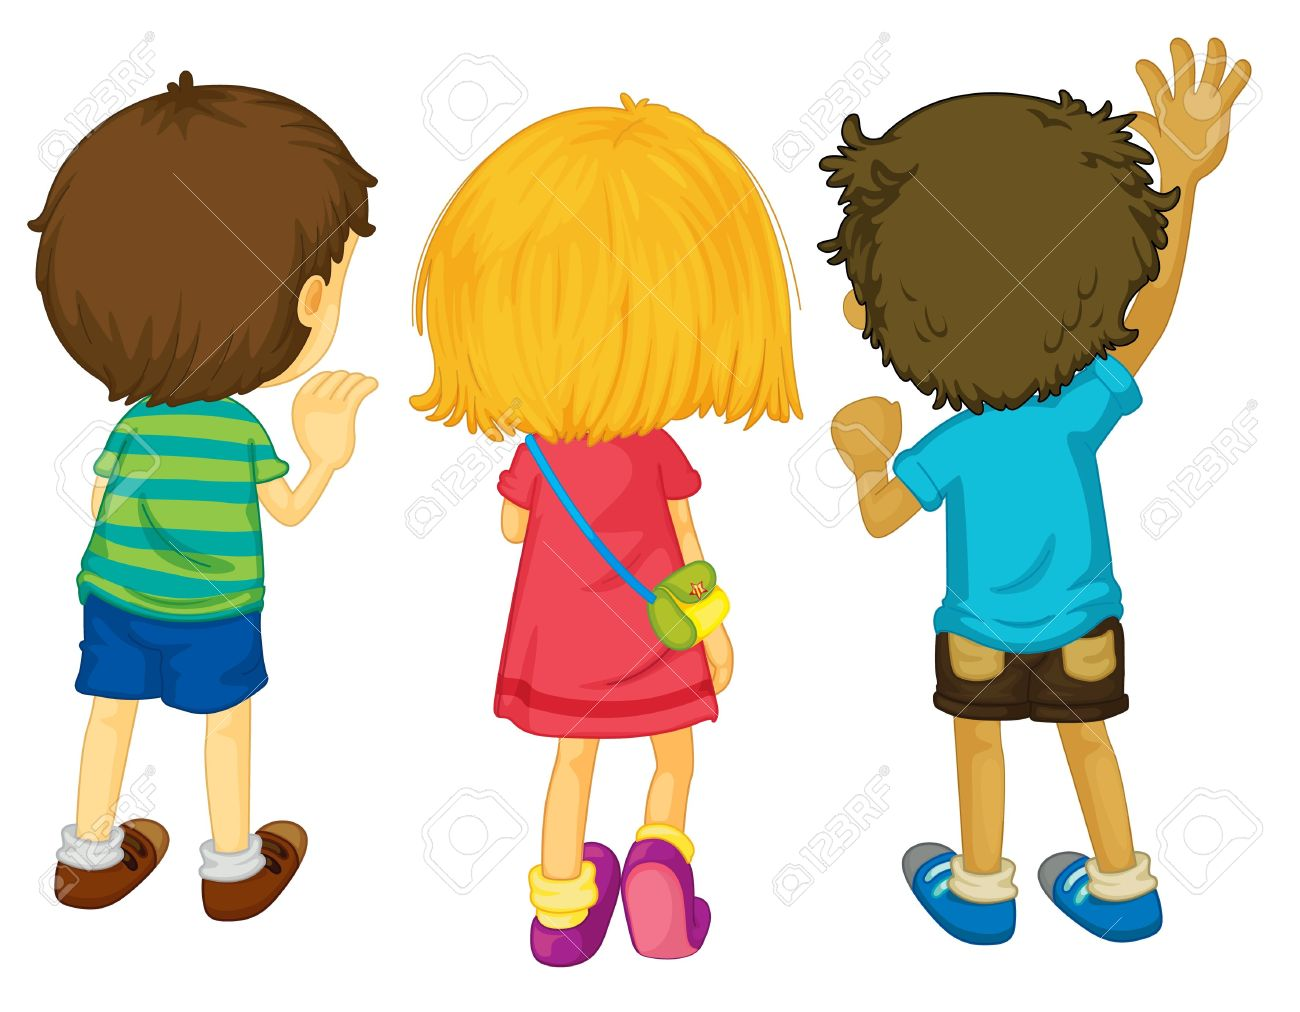 People clipart back Clipart Images Panda Free Back